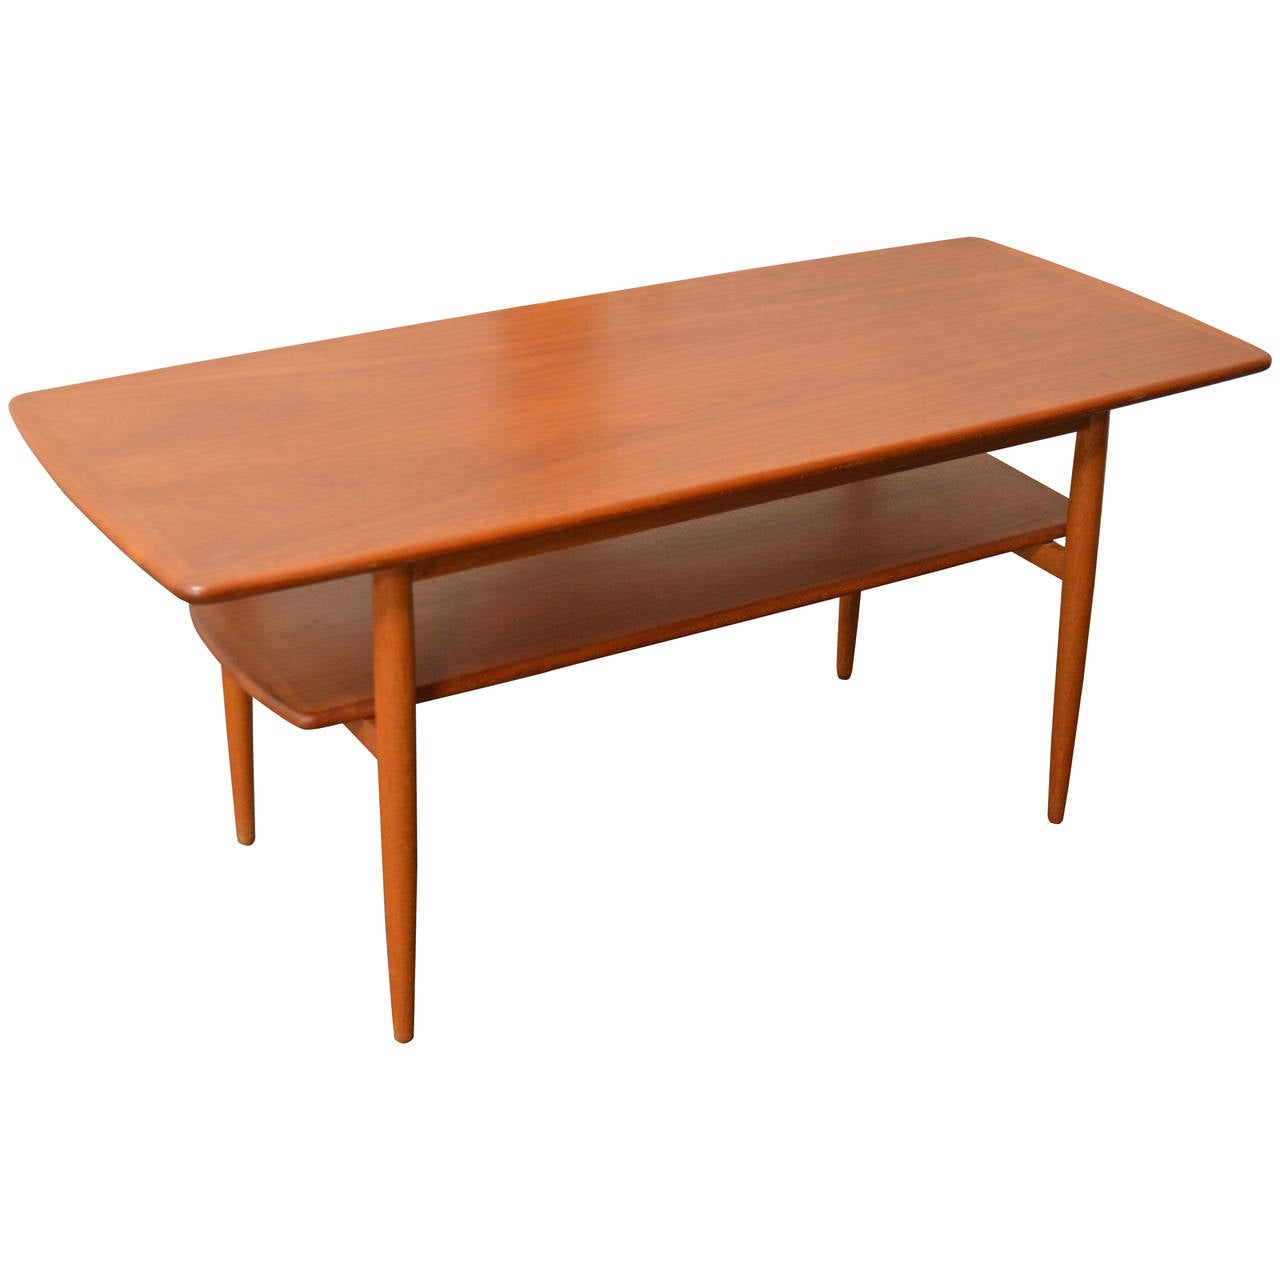 Mid century modern swedish teak coffee table with shelf for Mid century modern coffee table